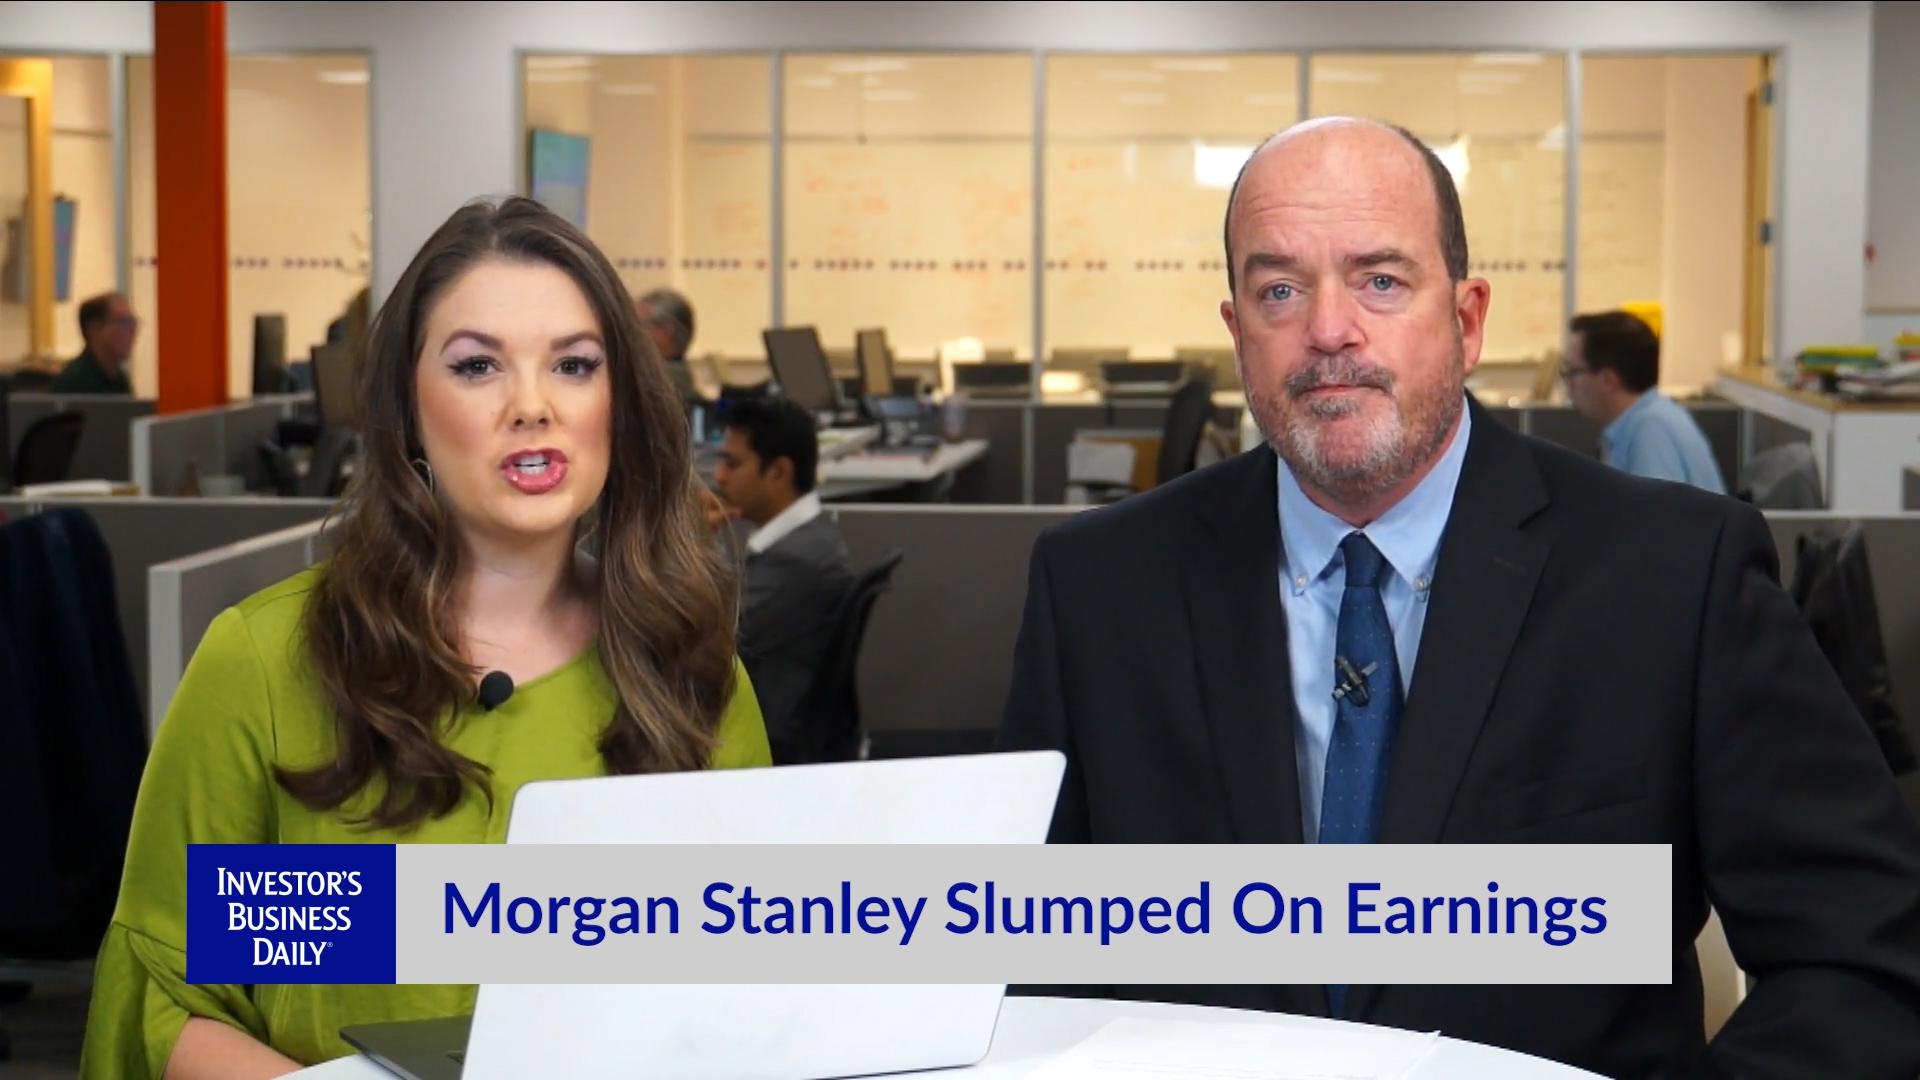 Morgan Stanley Slumped On Earnings Video